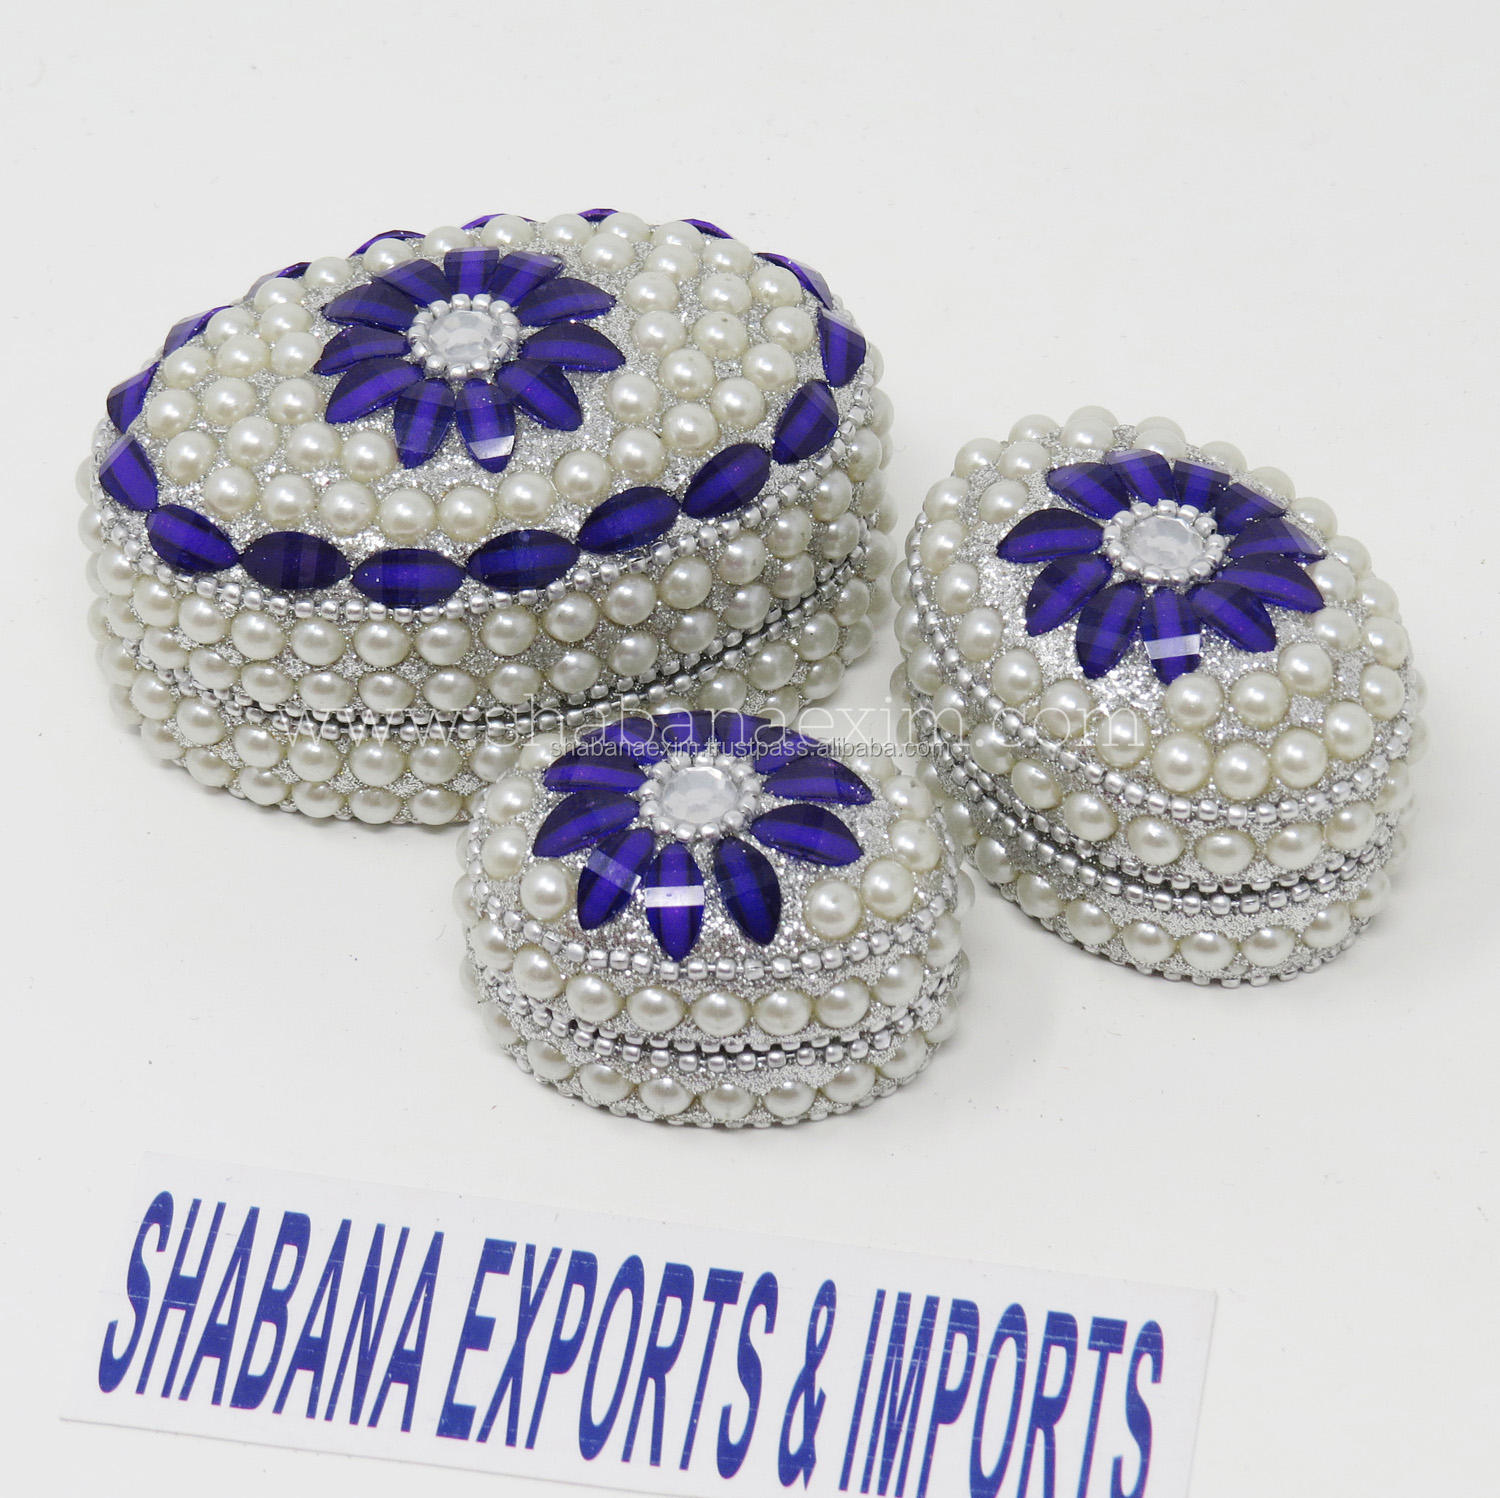 Jeweled Metal Trinket Box Decorative Wedding Round Box Wholesale Trinket Box